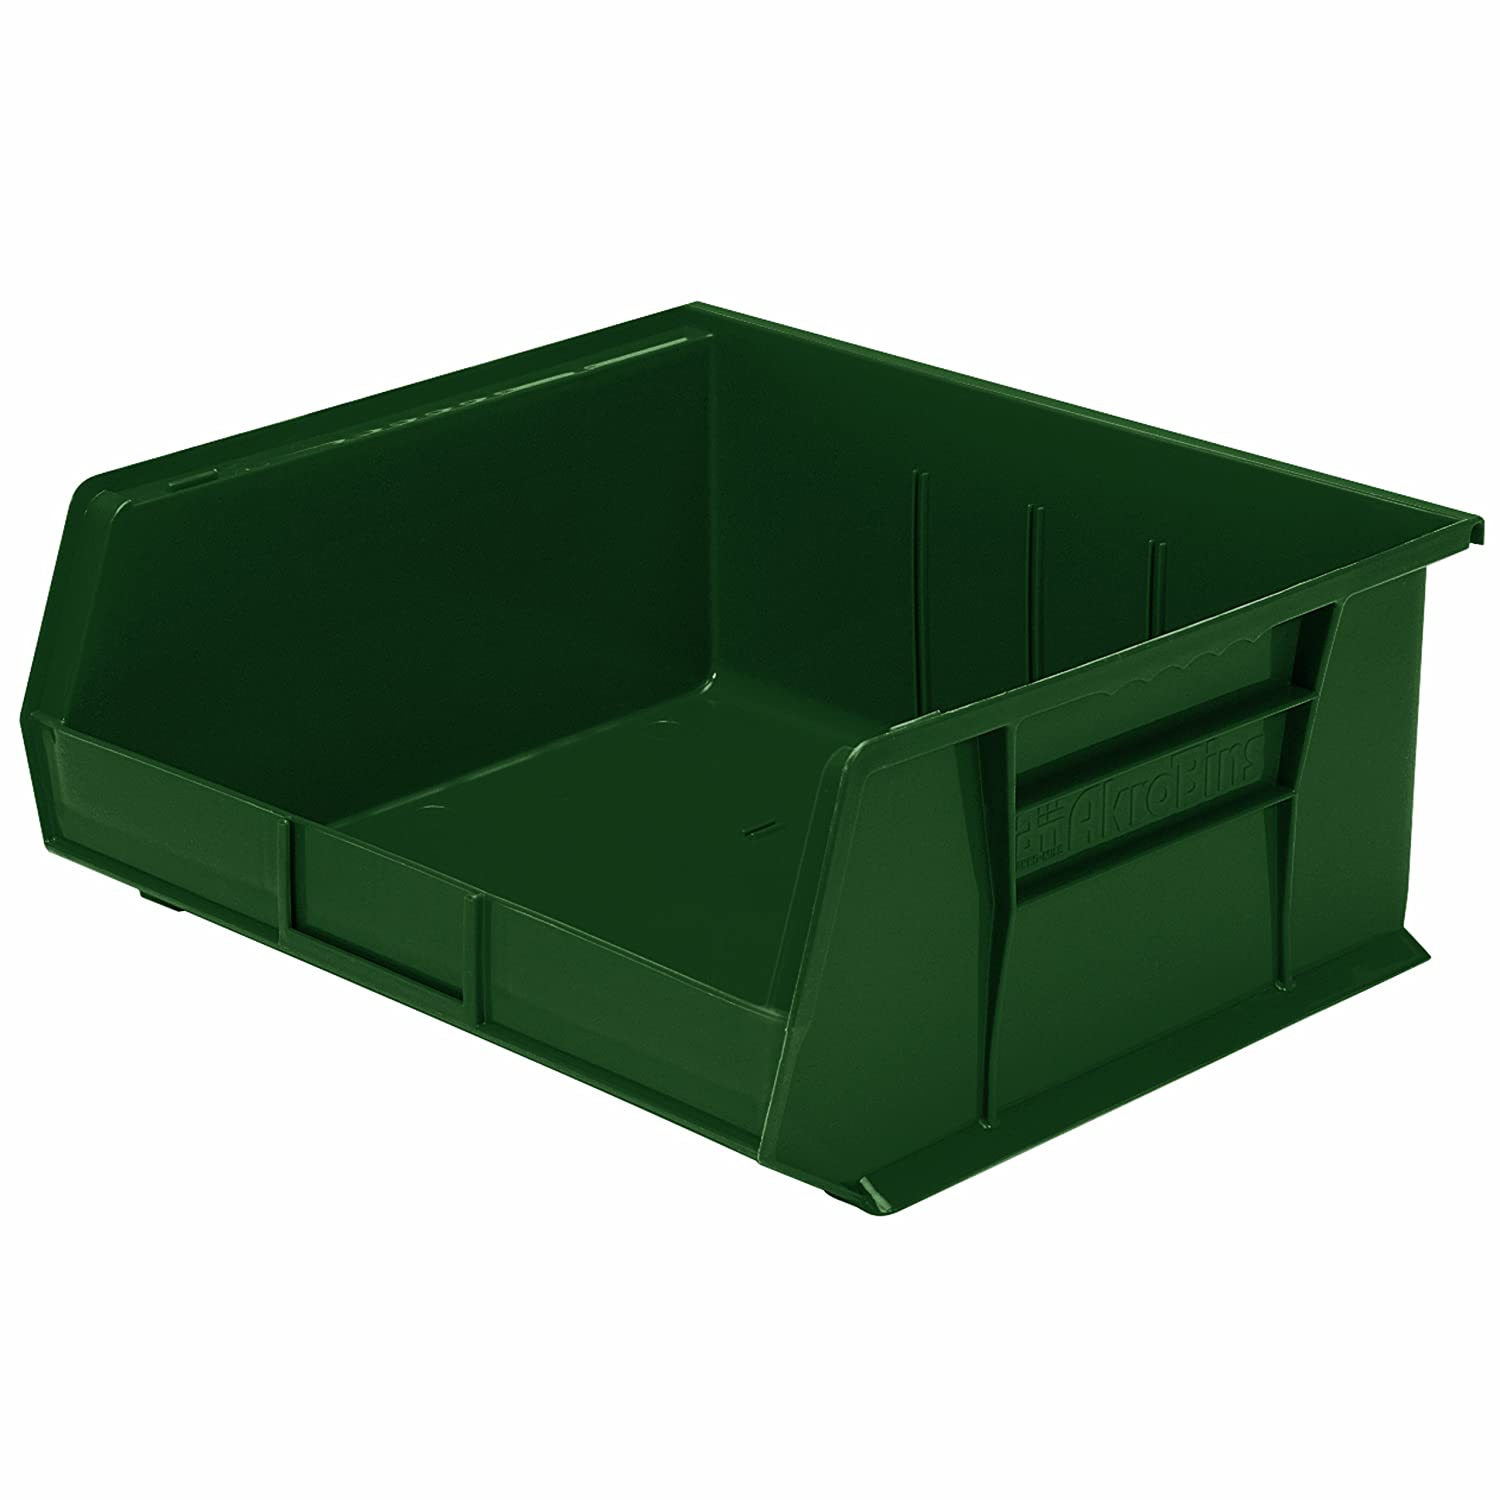 Akro-Mils 30250 RECYHG 15-Inch by 16-Inch by 7-Inch EarthSaver Recycled Plastic Stacking Hanging Akro Bin, Hunter Green, 6-Pack 30250RECYHG